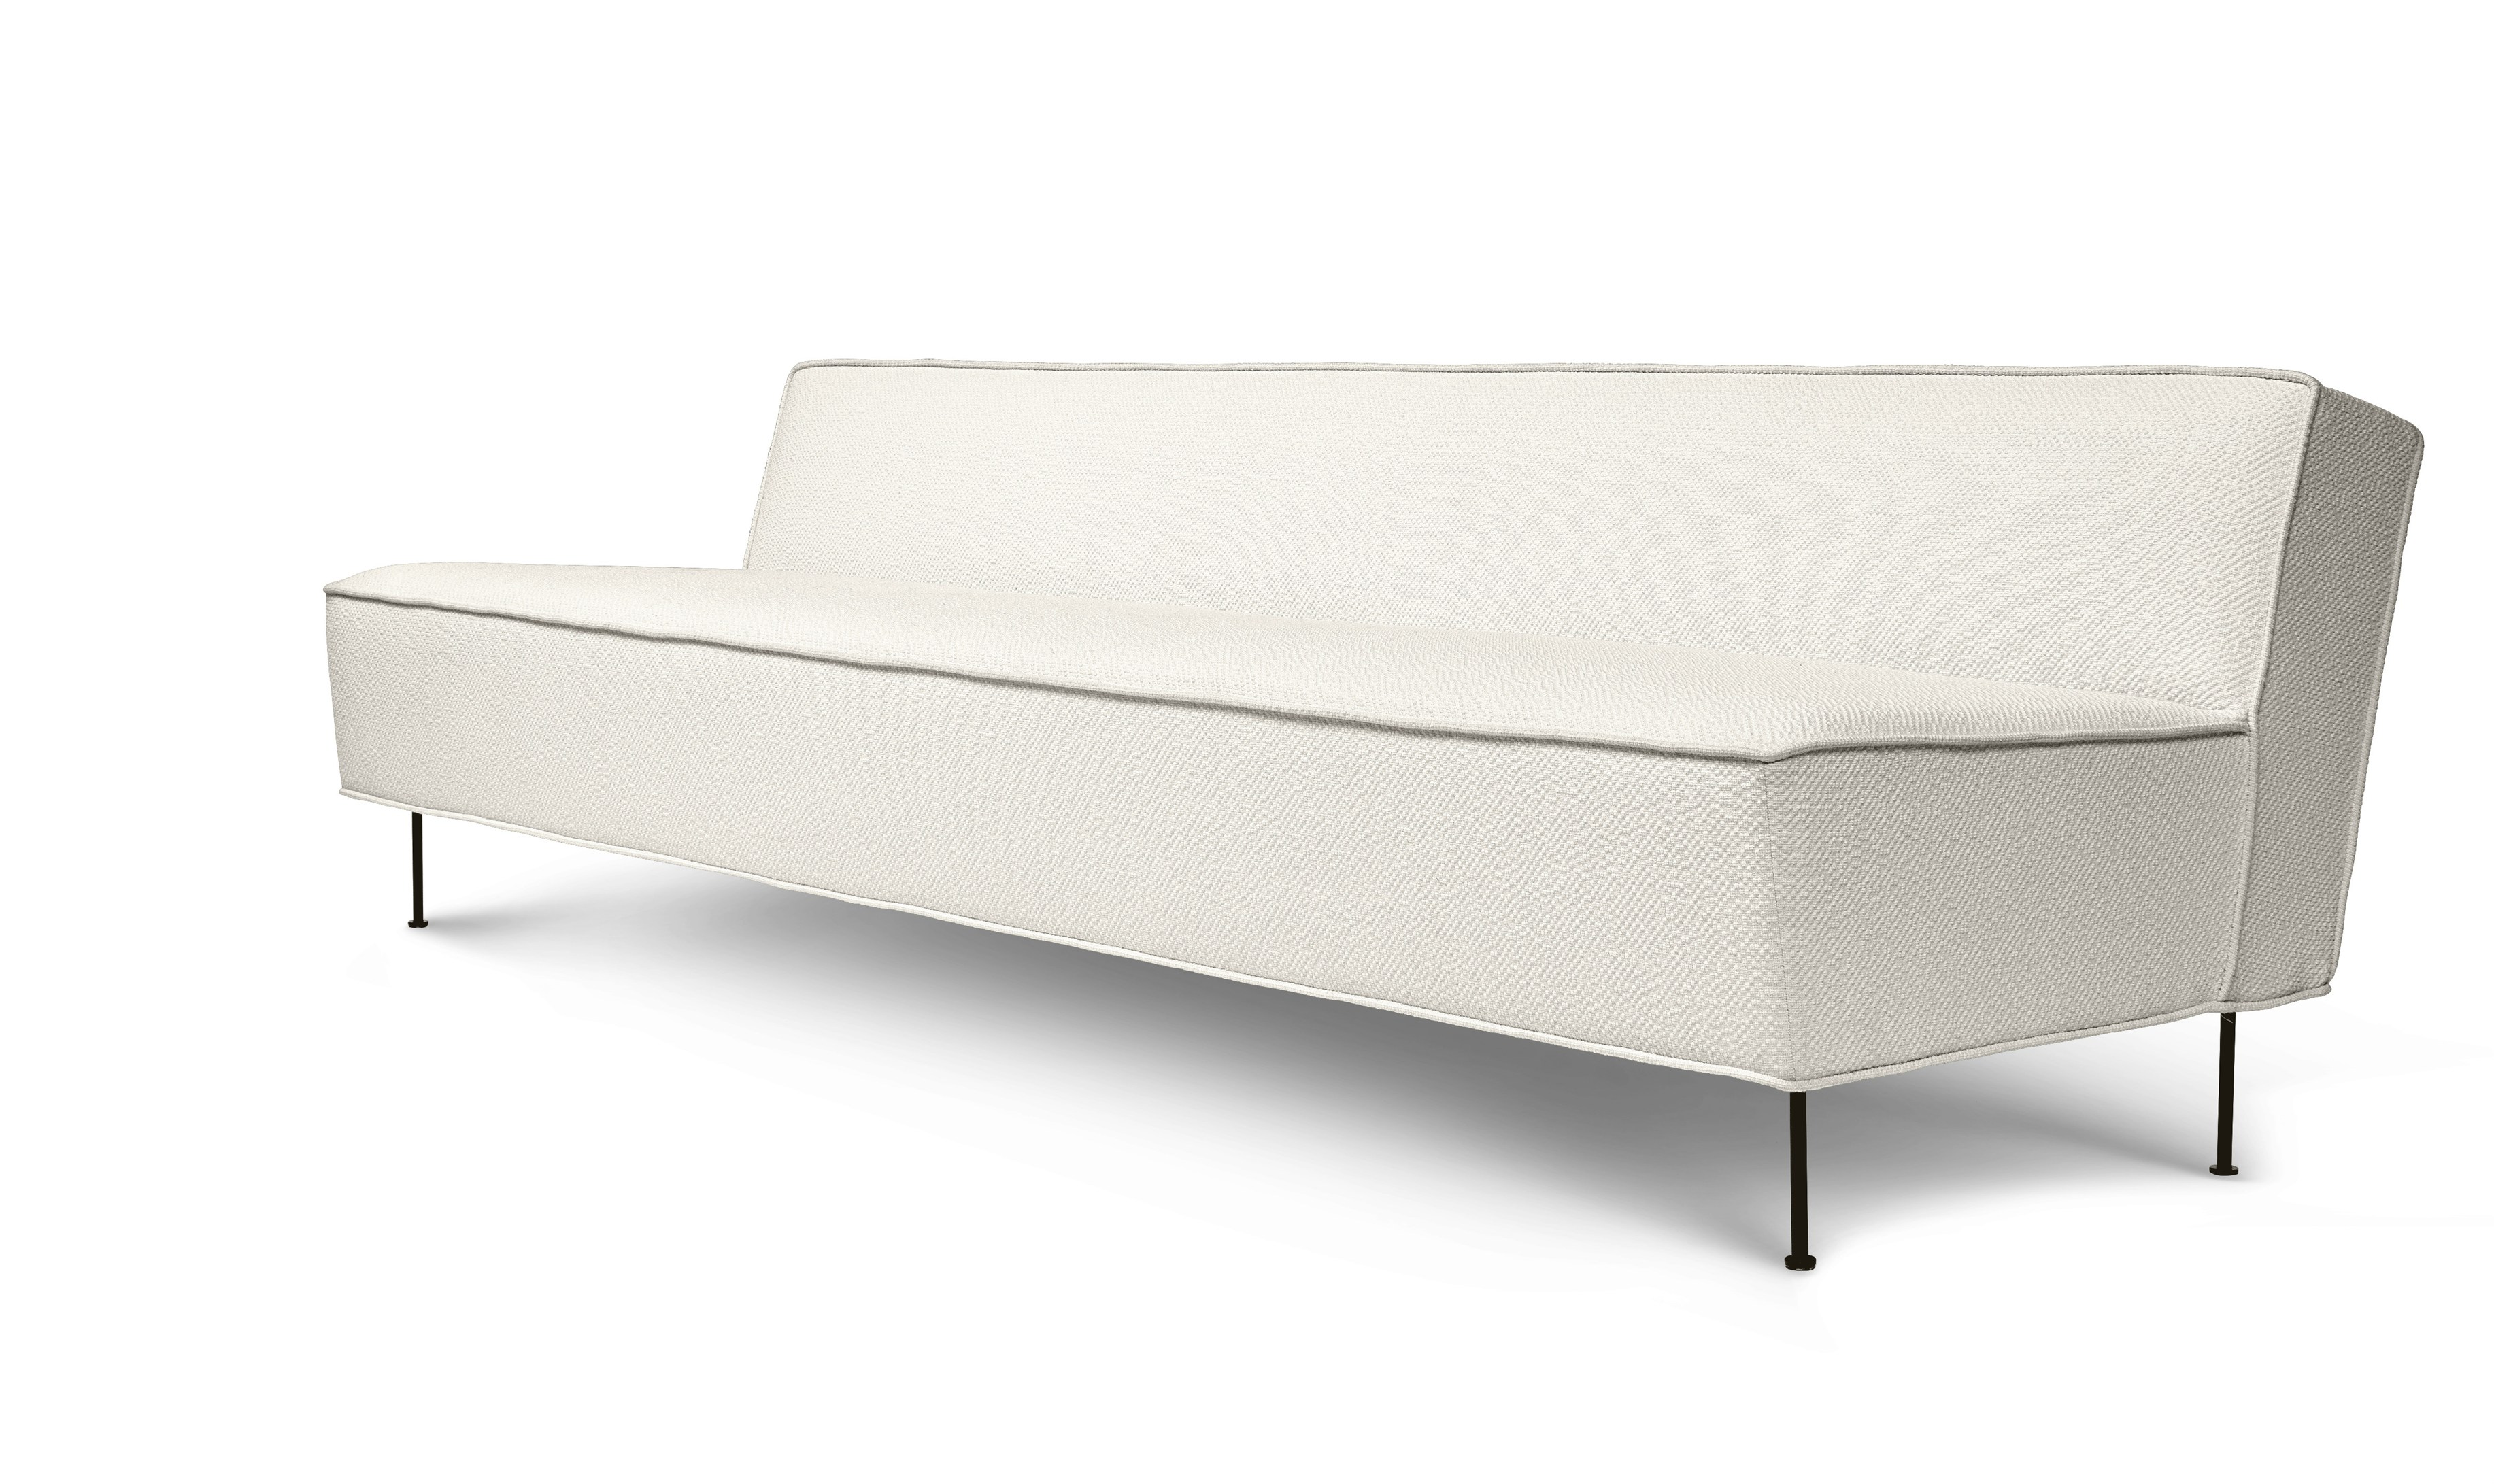 timeless design modern line sofa by greta magnusson